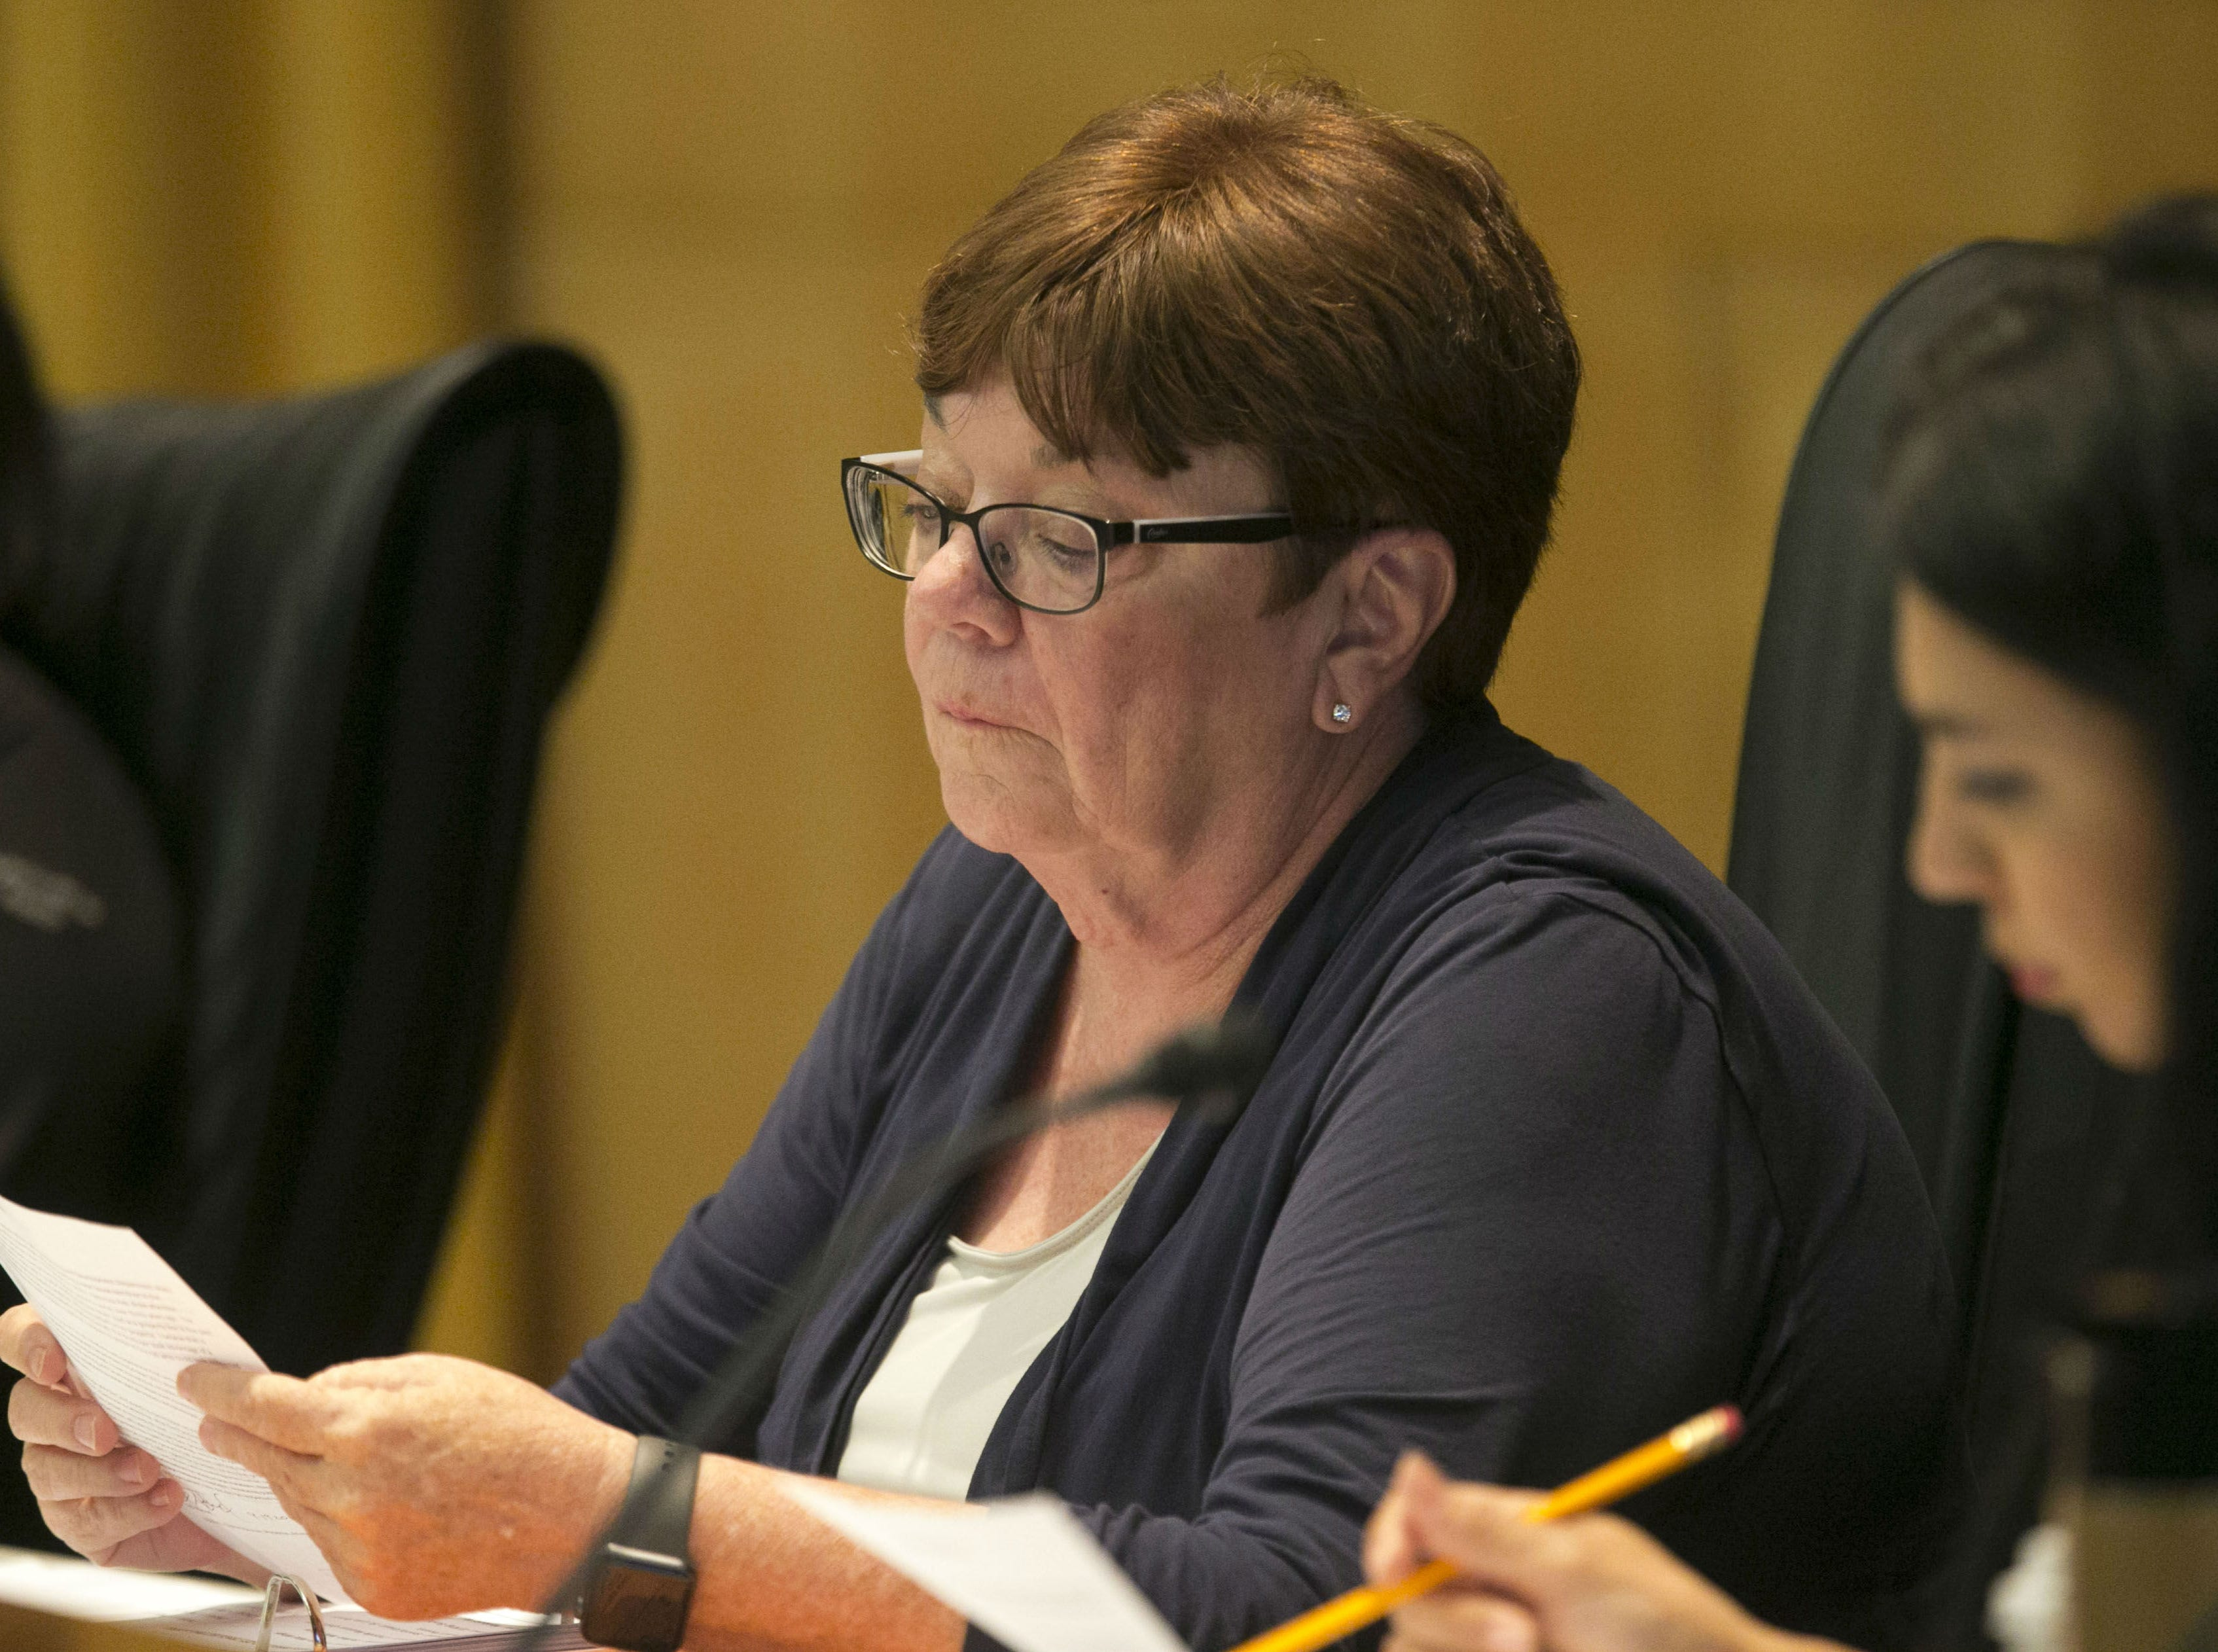 Phoenix City Councilwoman Debra Stark during a Phoenix City Council meeting at the Phoenix City Council Chambers on Sept. 19, 2018.